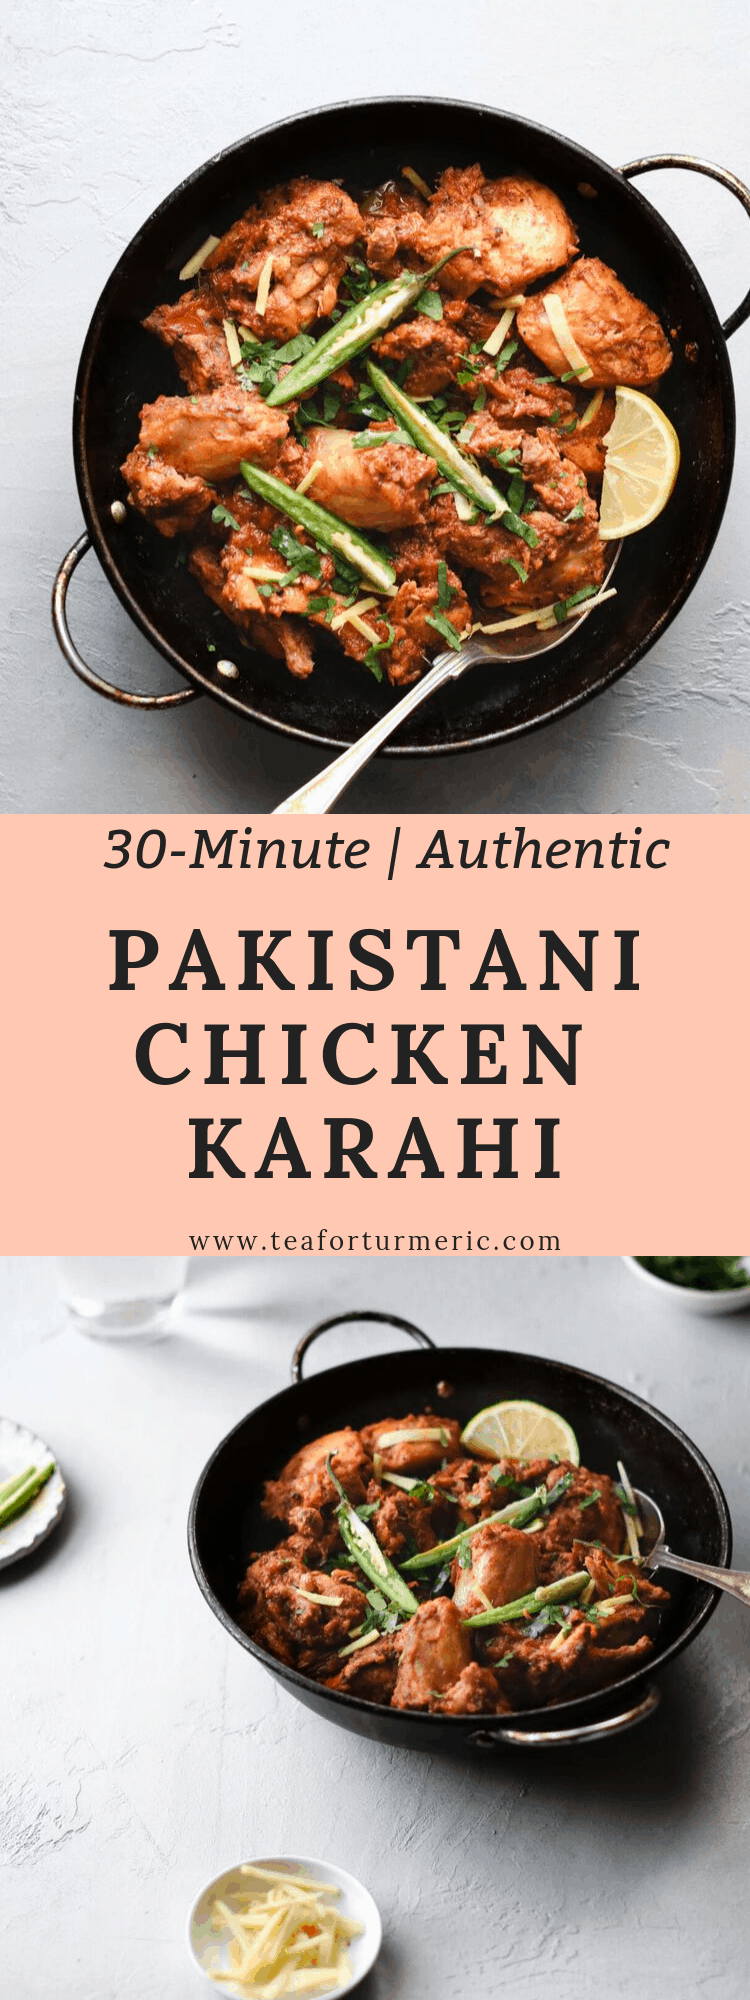 Chicken Karahi, or Kadai chicken, is undoubtedly one of the most popular curries in and out of Pakistan and India. This is a restaurant-style Pakistani Chicken Karahi recipe that can be prepared quickly and easily with no finicky steps. #pakistanifood